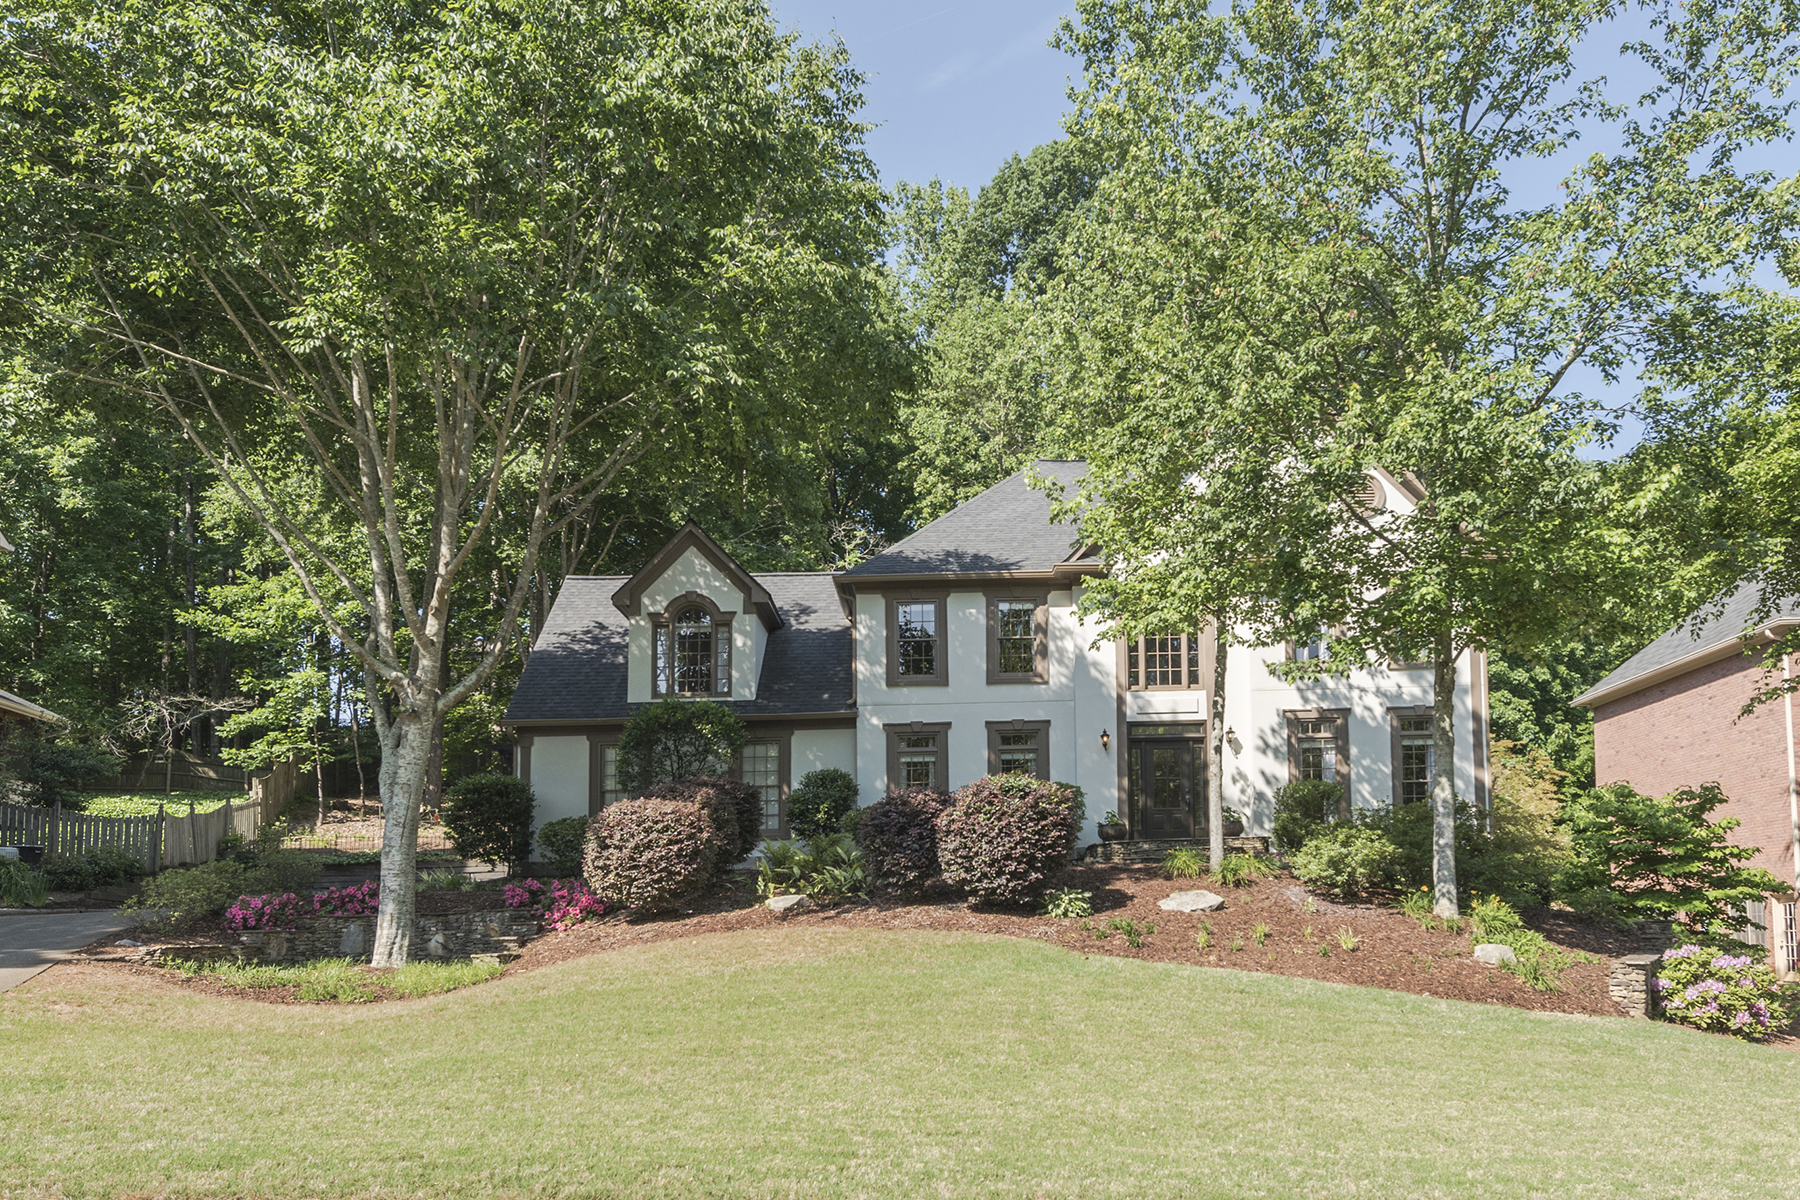 Single Family Home for Sale at Outdoor Living At Its Best Perfect For Entertaining! 110 Kensington Pond Ct Roswell, Georgia 30075 United States